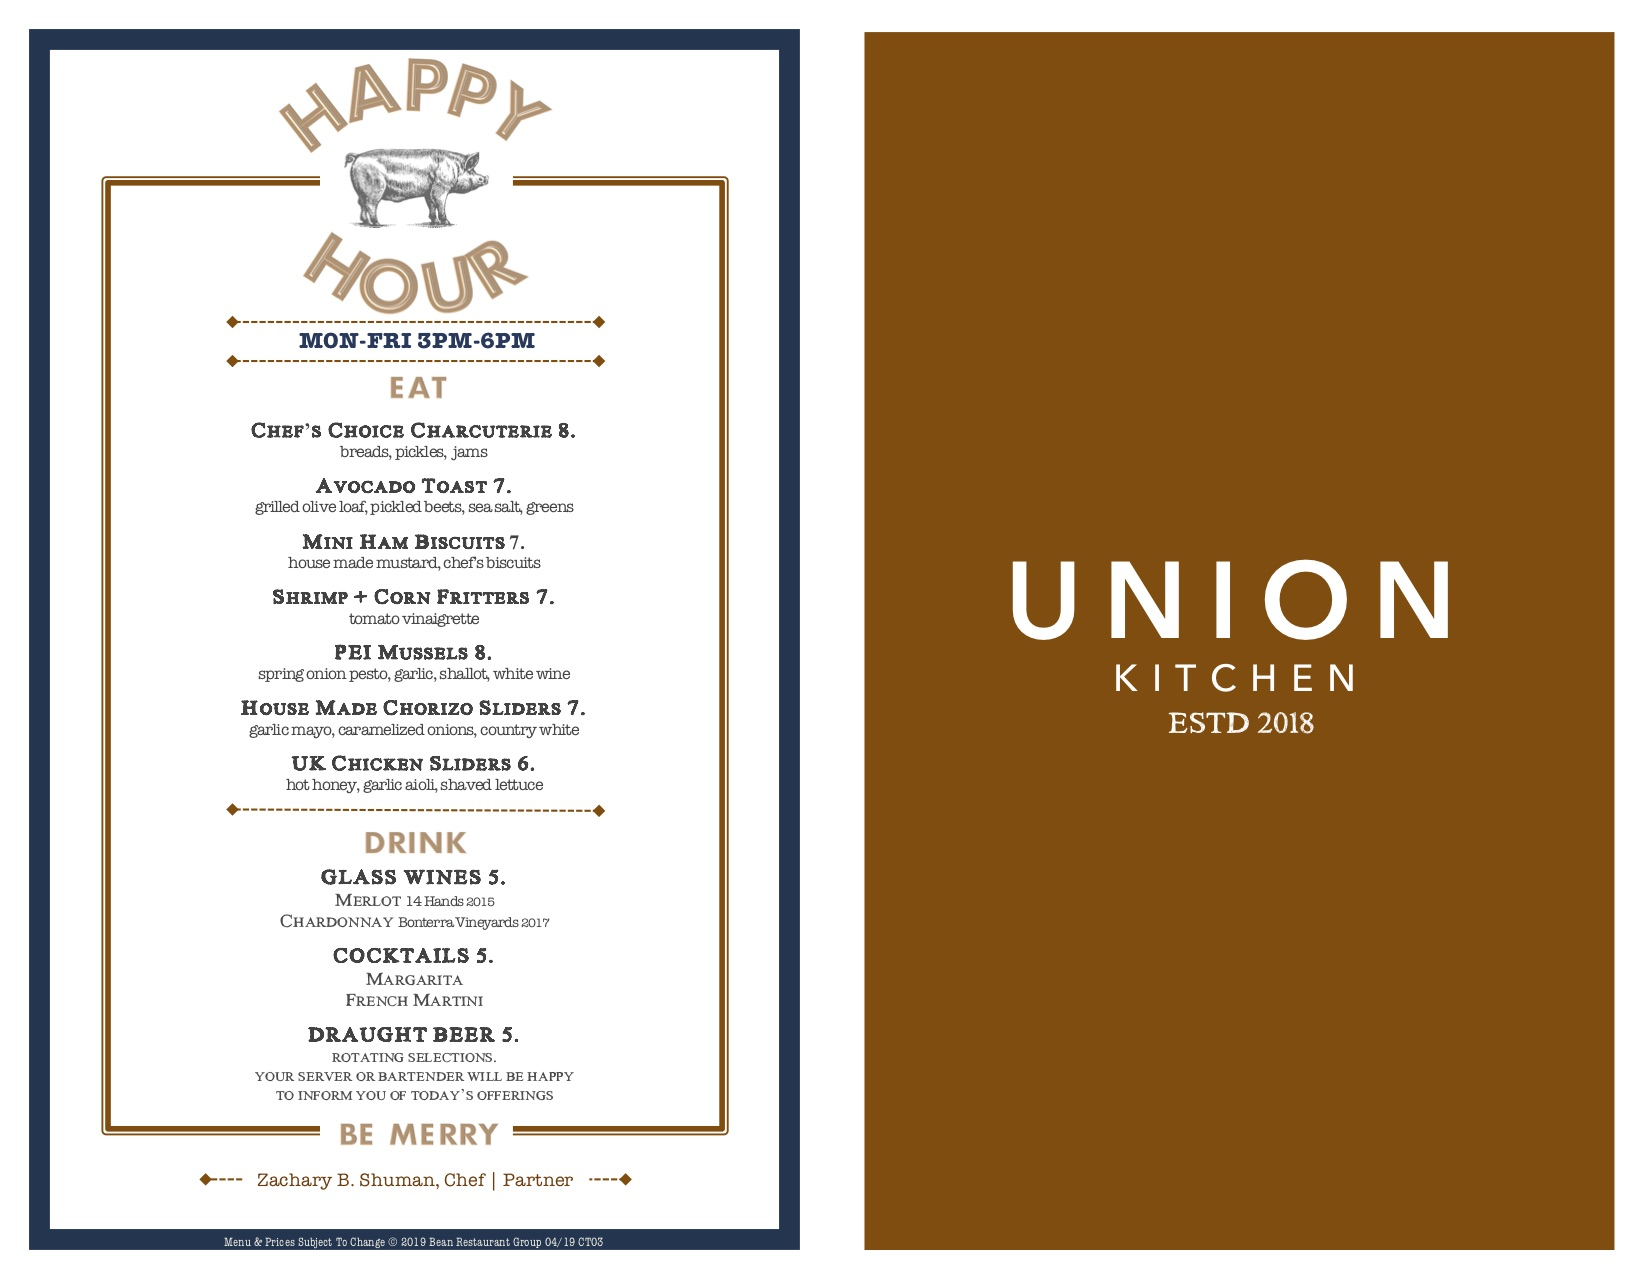 uk happy hour menu 0419b 2 copy.jpg